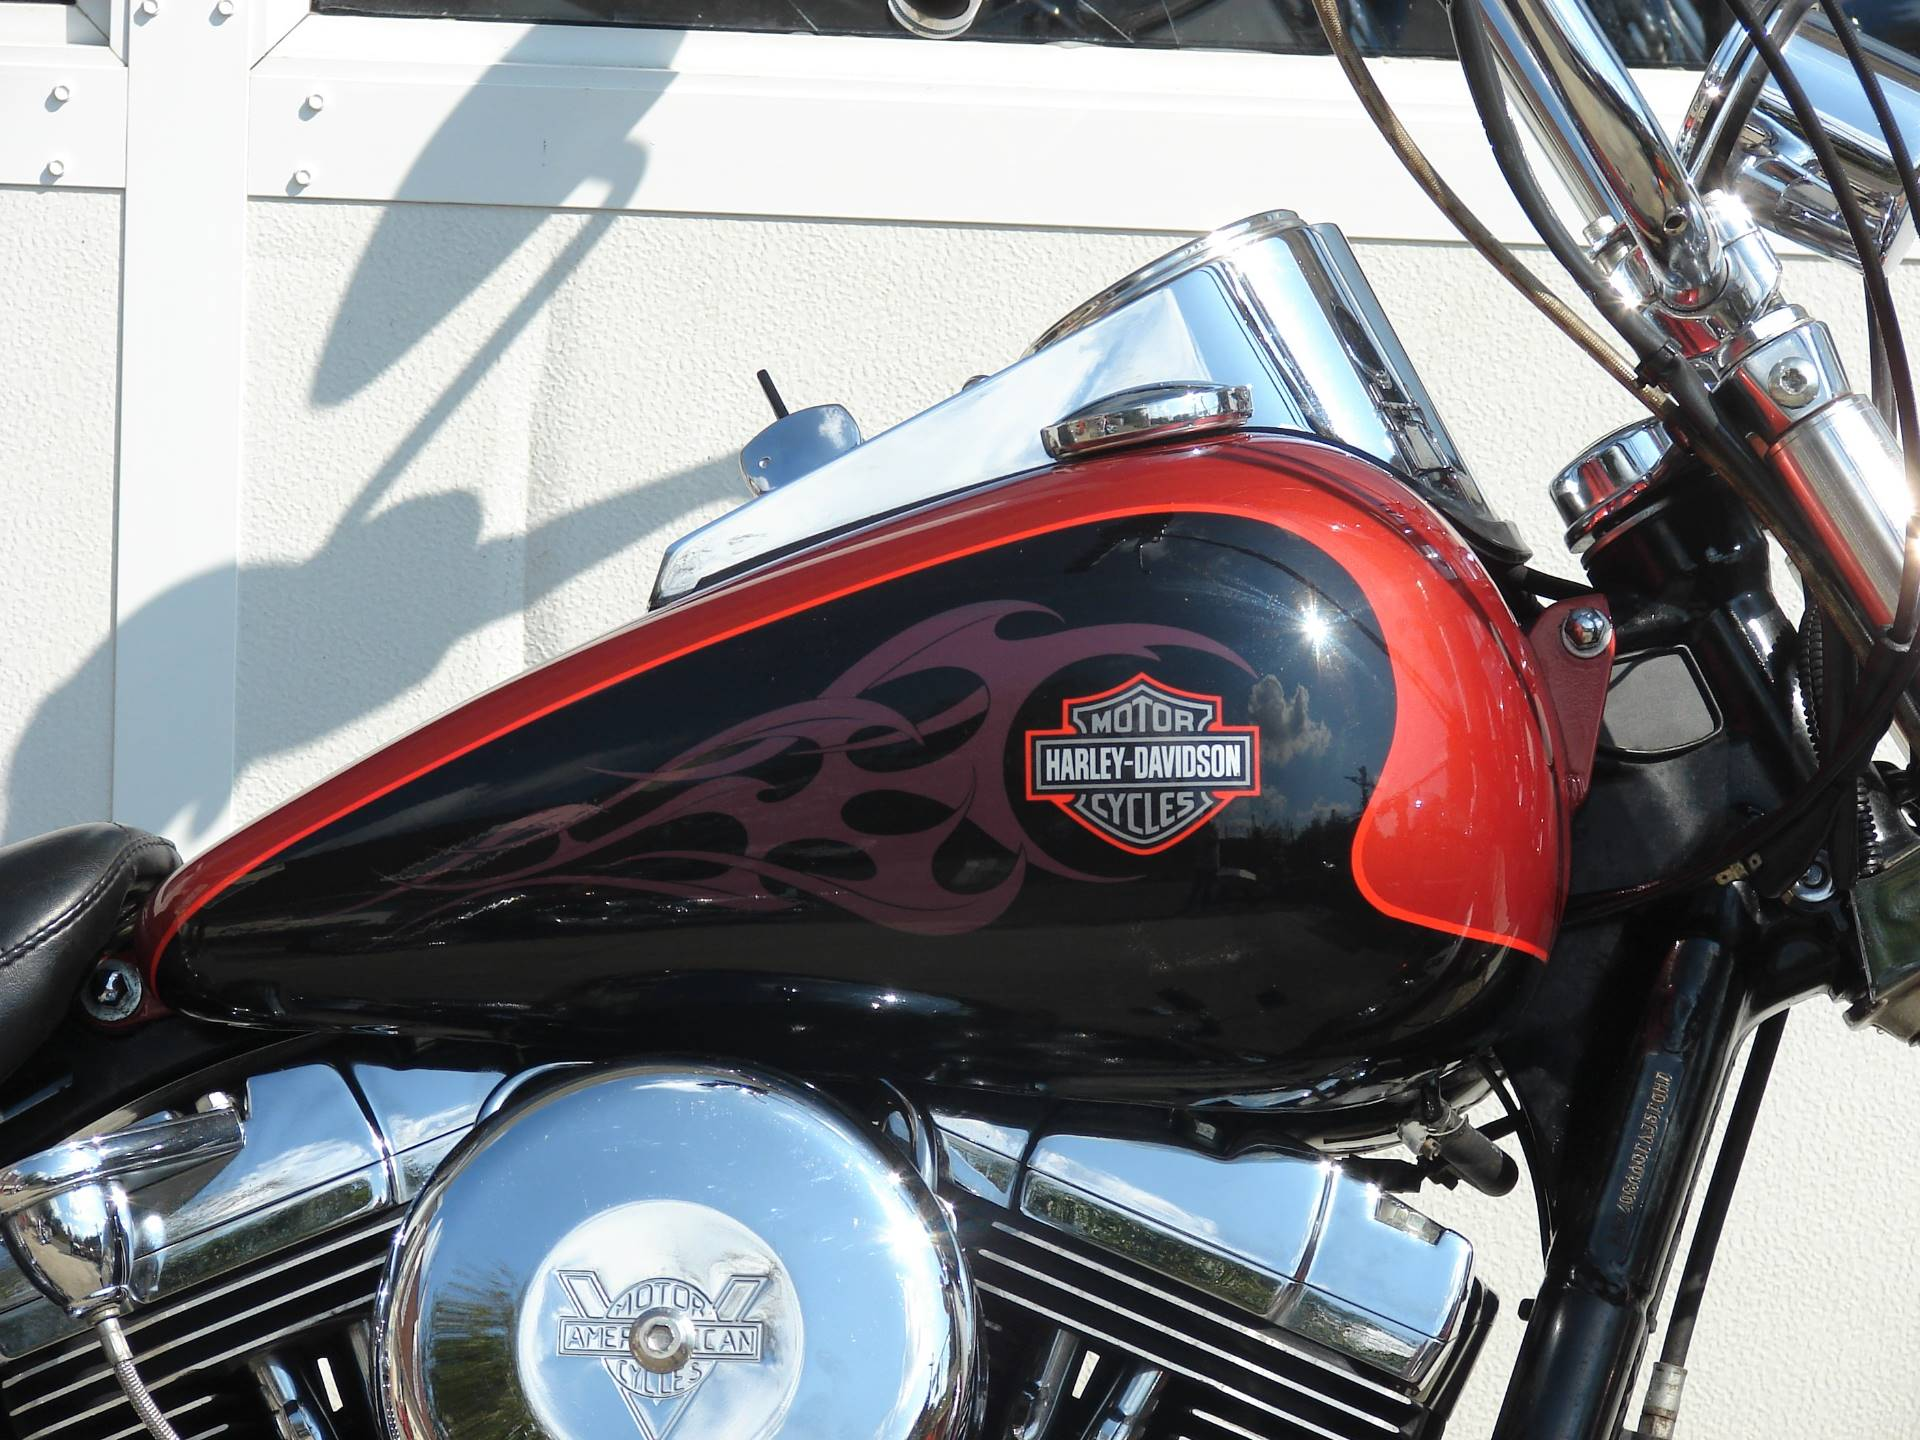 2000 Harley-Davidson FXDWG Dyna Wide Glide in Williamstown, New Jersey - Photo 12